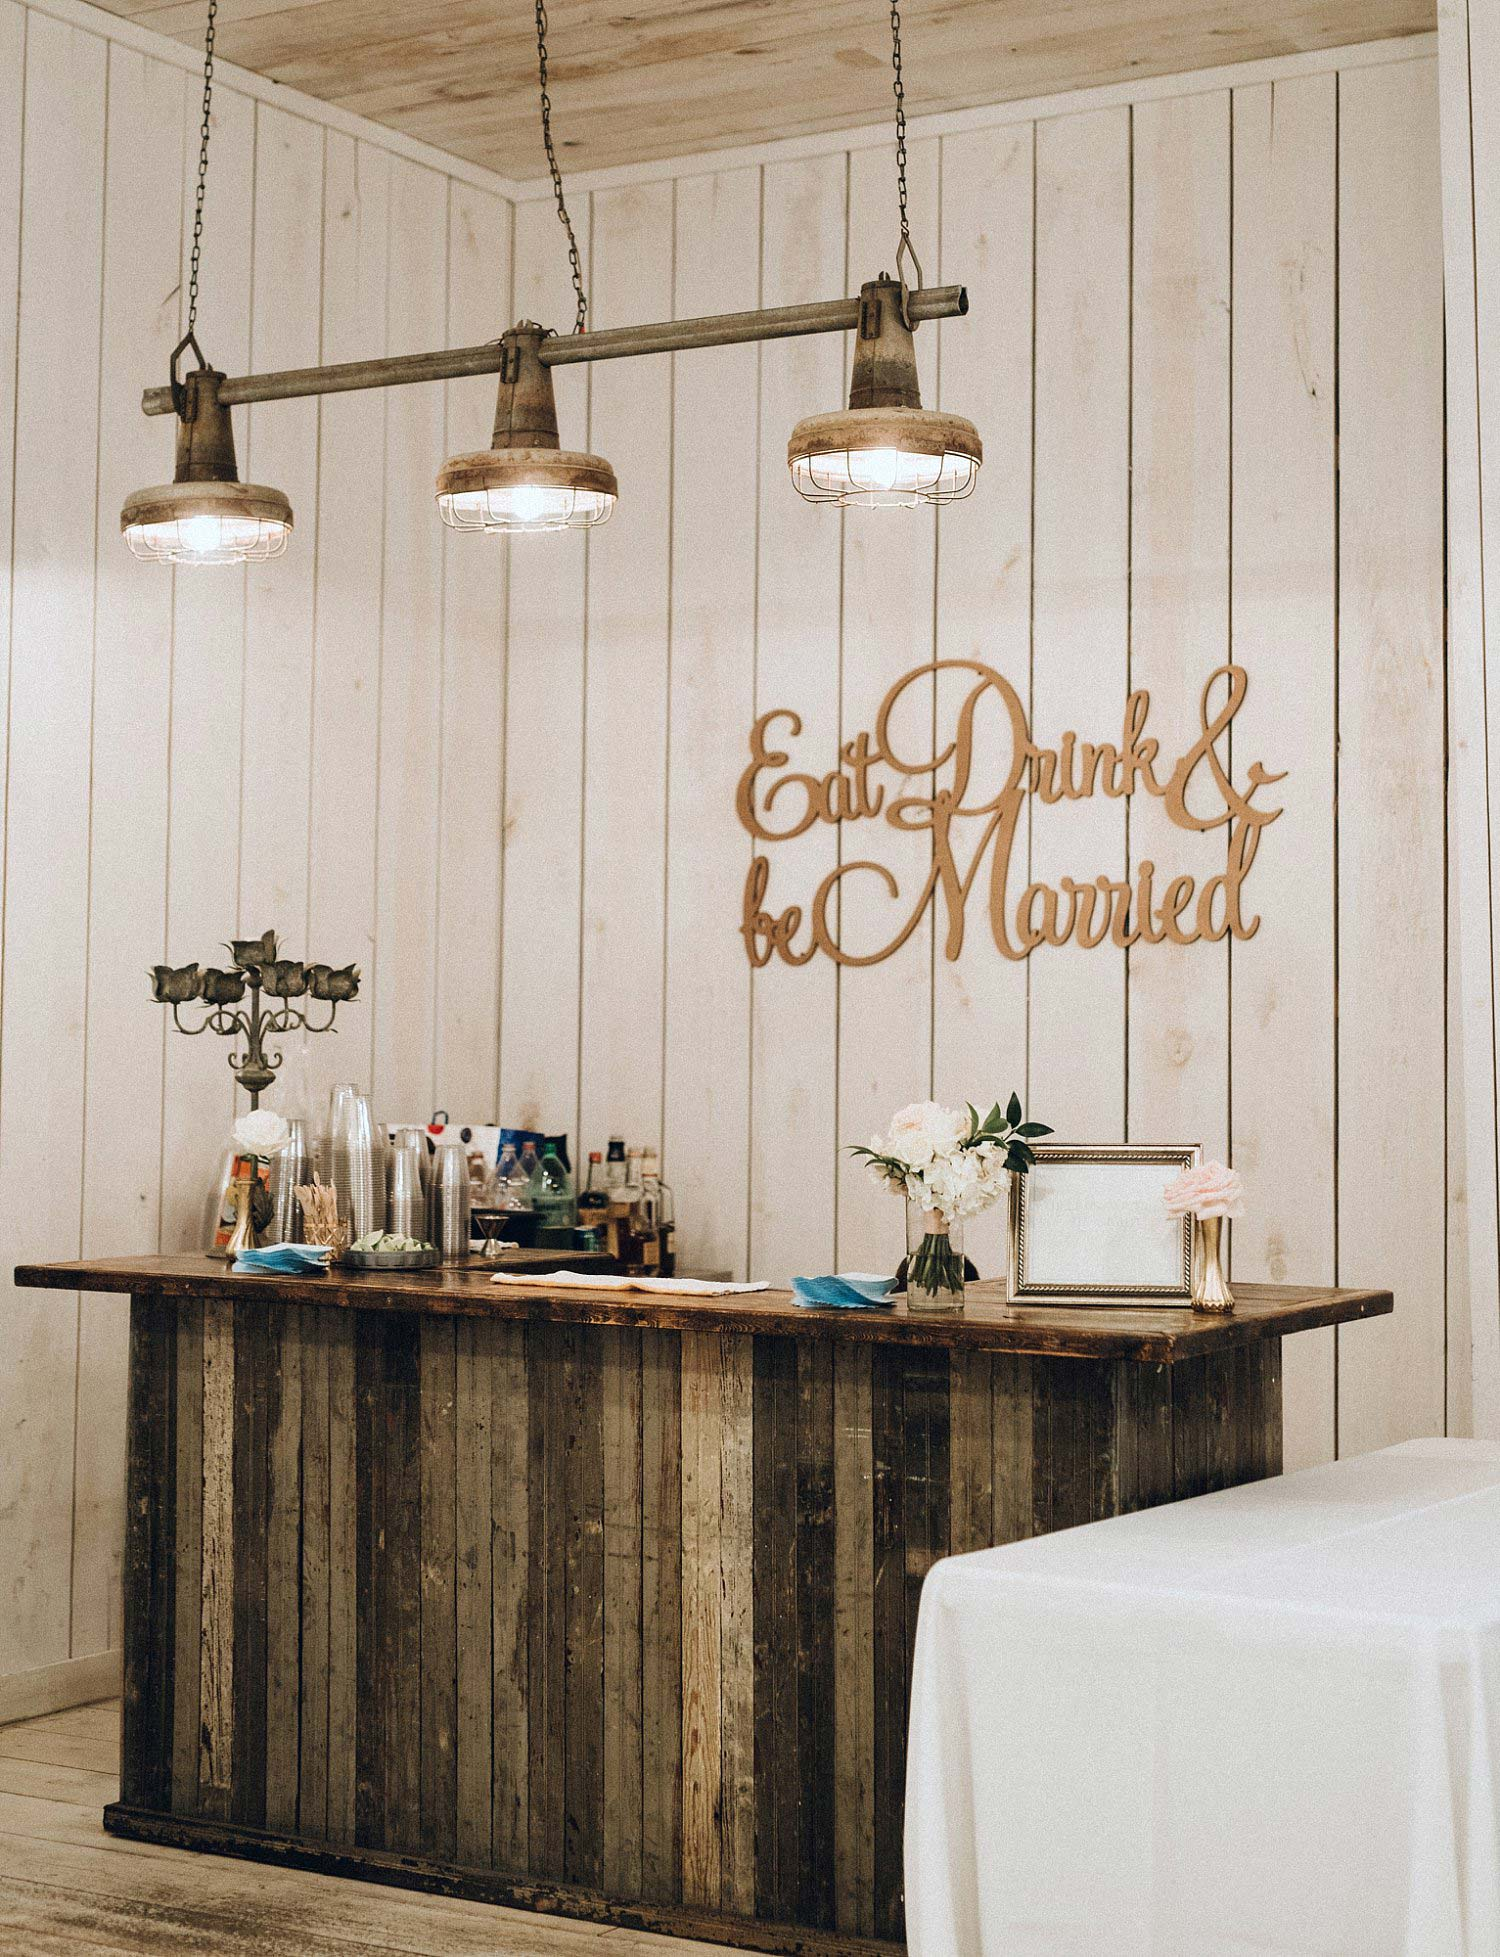 Wood bar with laser cut signage and shiplap walls